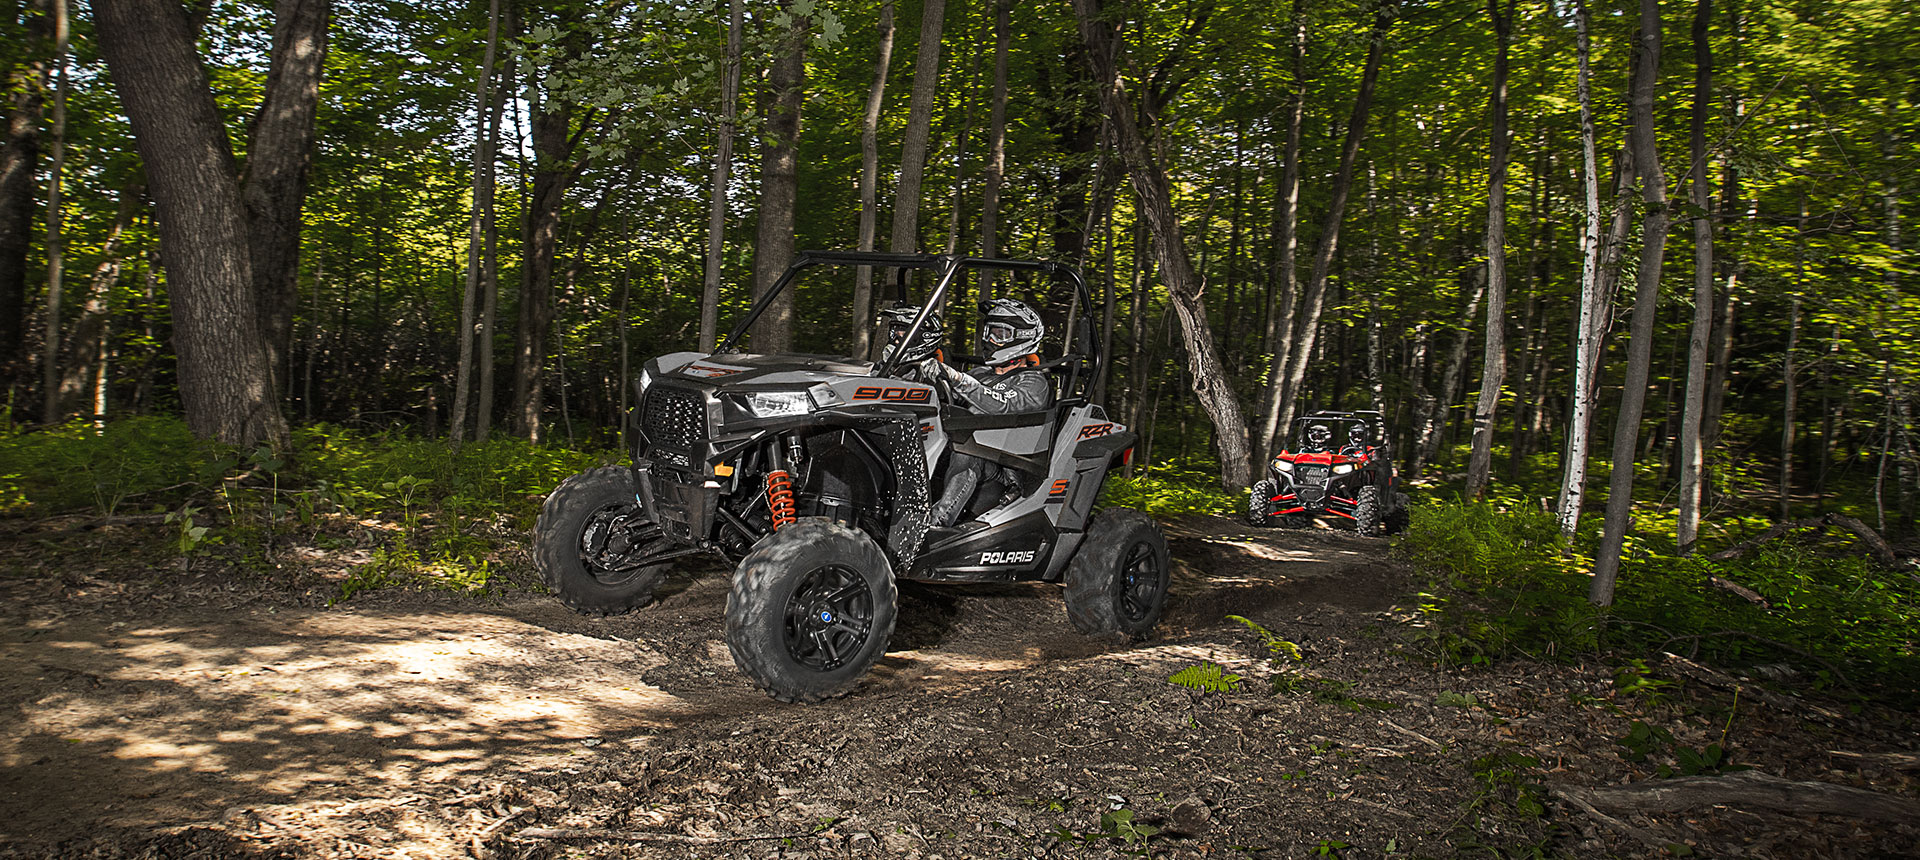 2019 Polaris RZR S 900 in Leesville, Louisiana - Photo 8